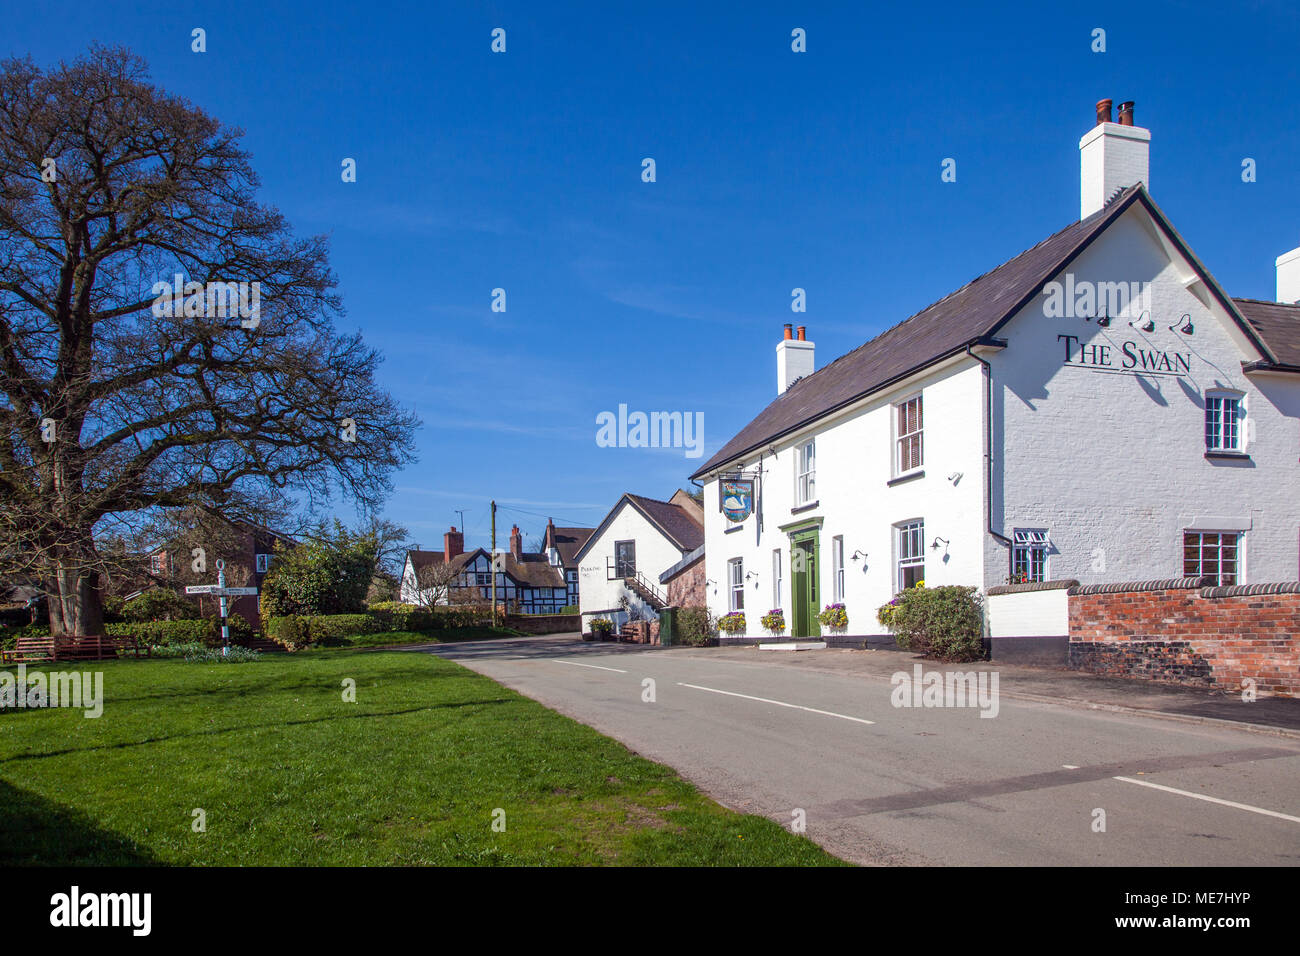 The village green and the Swan inn / public house at the South Cheshire rural countryside village of Marbury with black and white half timbered houses Stock Photo